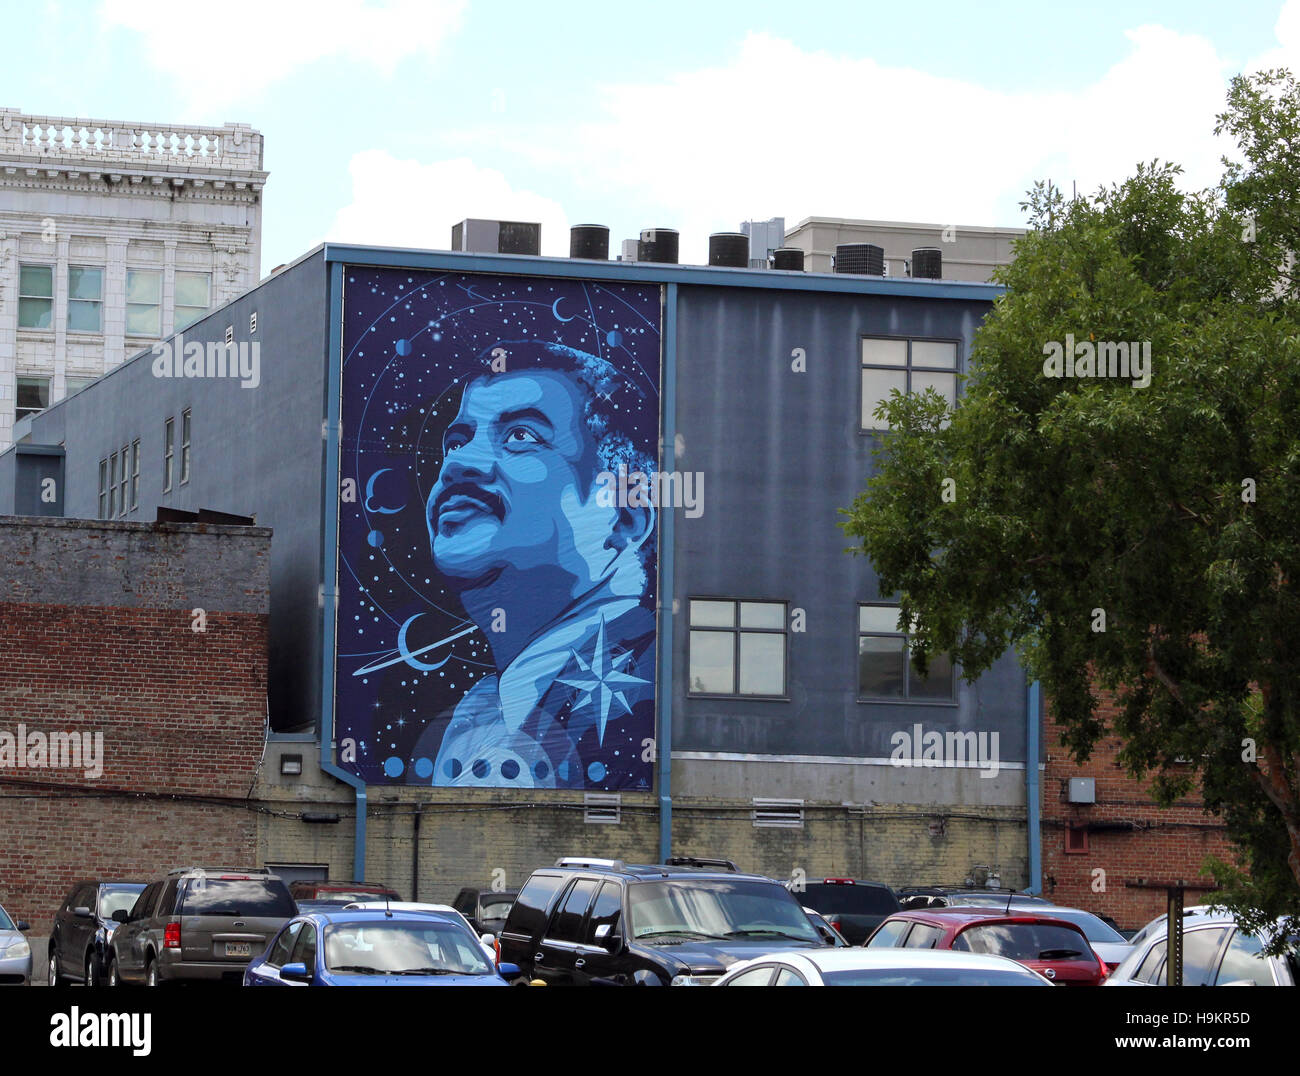 Wall Mural 7 Tribute to Dr Neil deGrasse Tyson by Vance Kelly